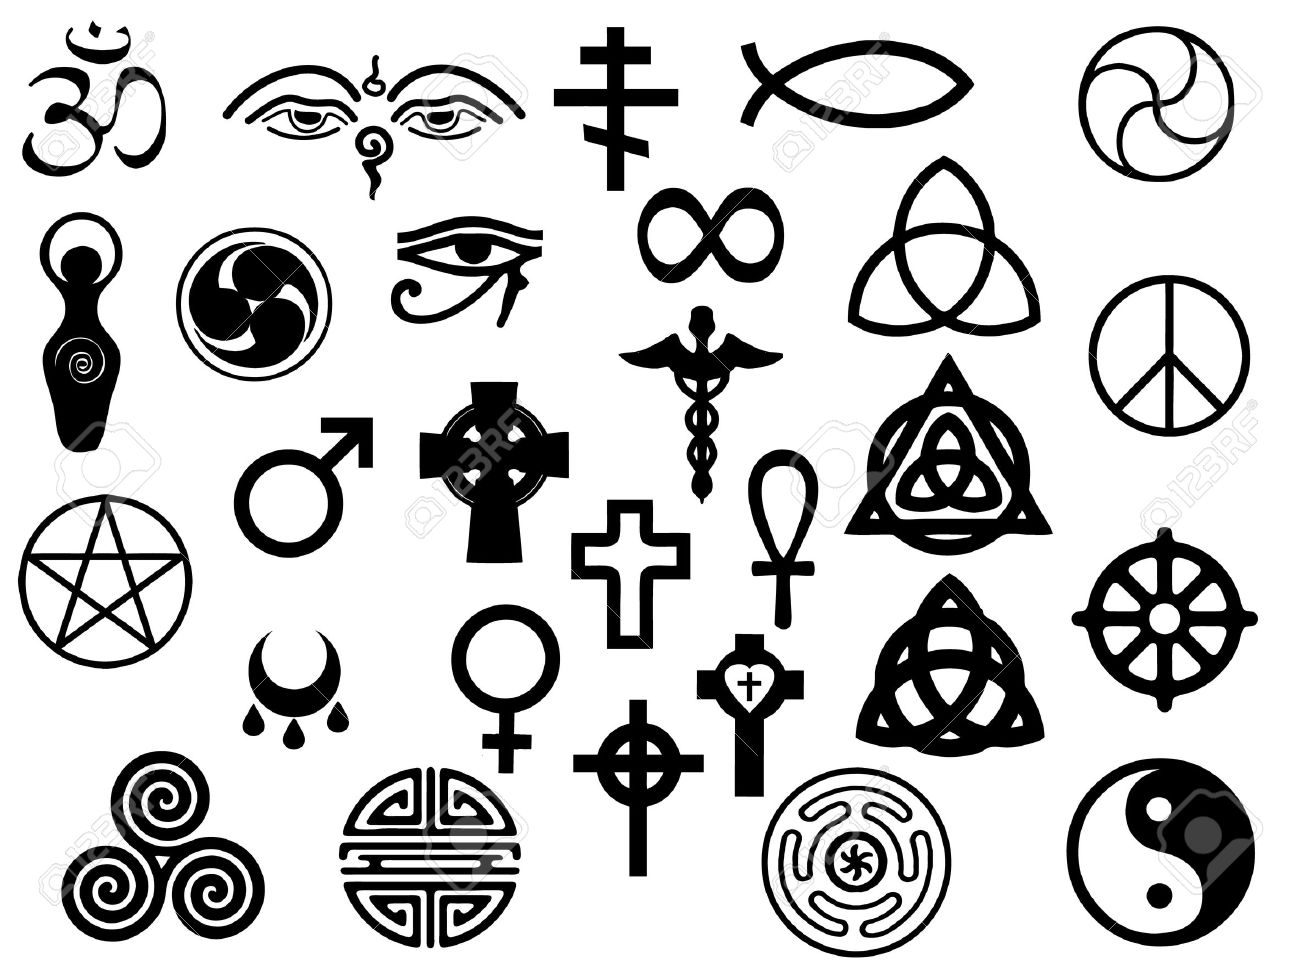 Vectors Of Sacred And Healing Symbols For Use In Artwork And